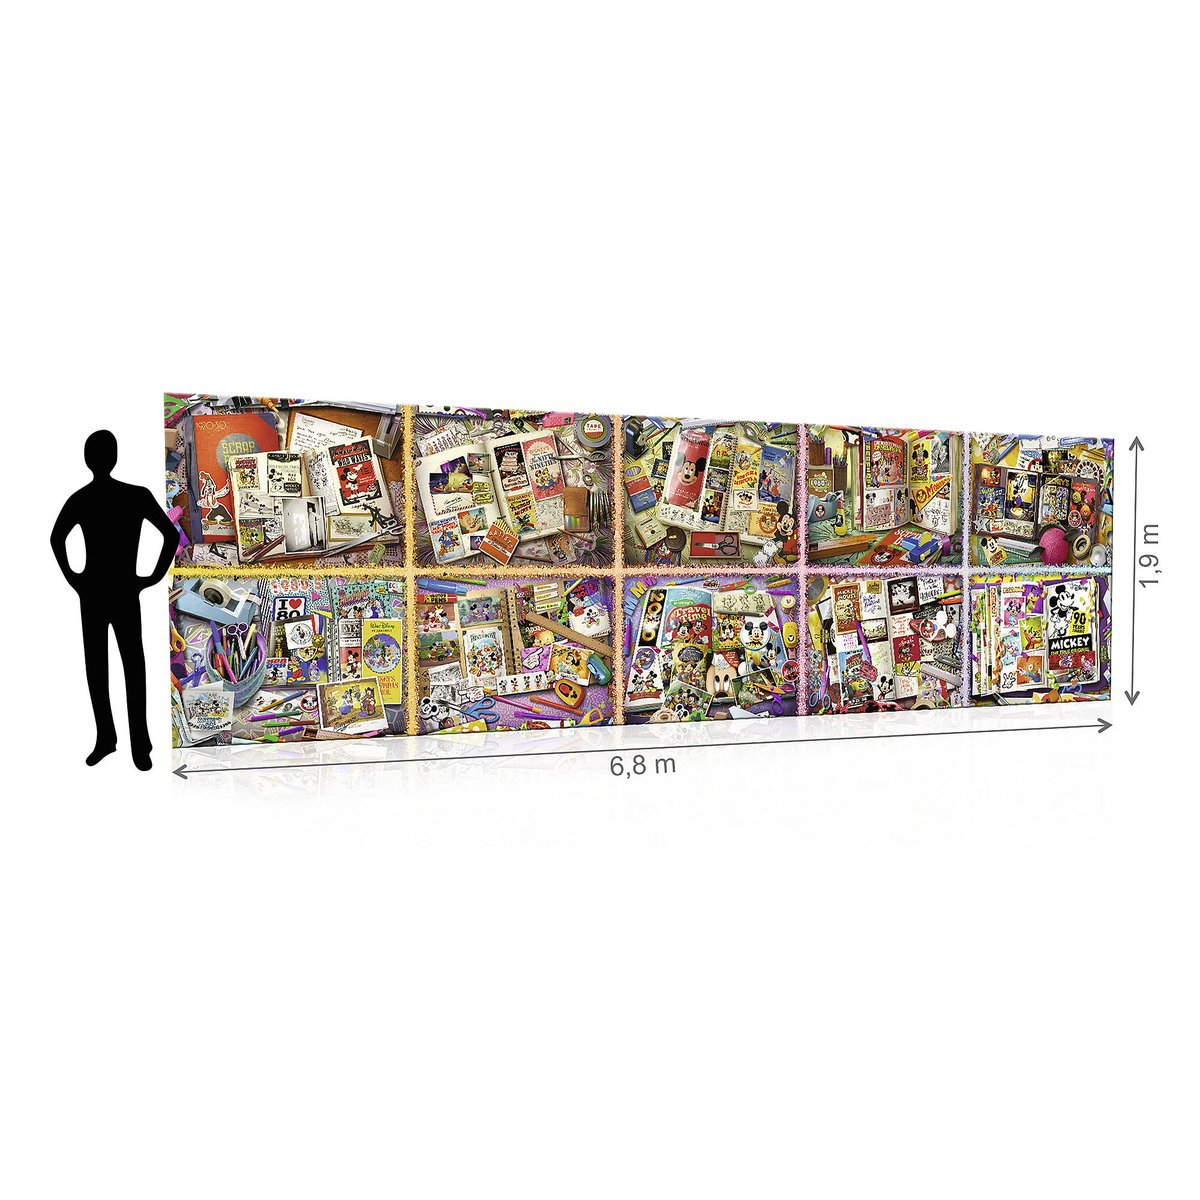 Looking for something to help pass the time? Try a 40,320-piece jigsaw puzzle! Measuring over 6-feet high and over 22-feet wide (when assembled), this giant puzzle features 10 scenes of #MickeyMouse throughout his 90-year history.  https://shopdisney.com/mickey-the-true-original-gigantic-puzzle-by-ravensburger-400555617828.html?isProductSearch=0&plpPosition=13&guestFacing=Toys-Shop%2520By%2520Category-Games%2520%2526%2520Puzzles …pic.twitter.com/F1YP0vFm69